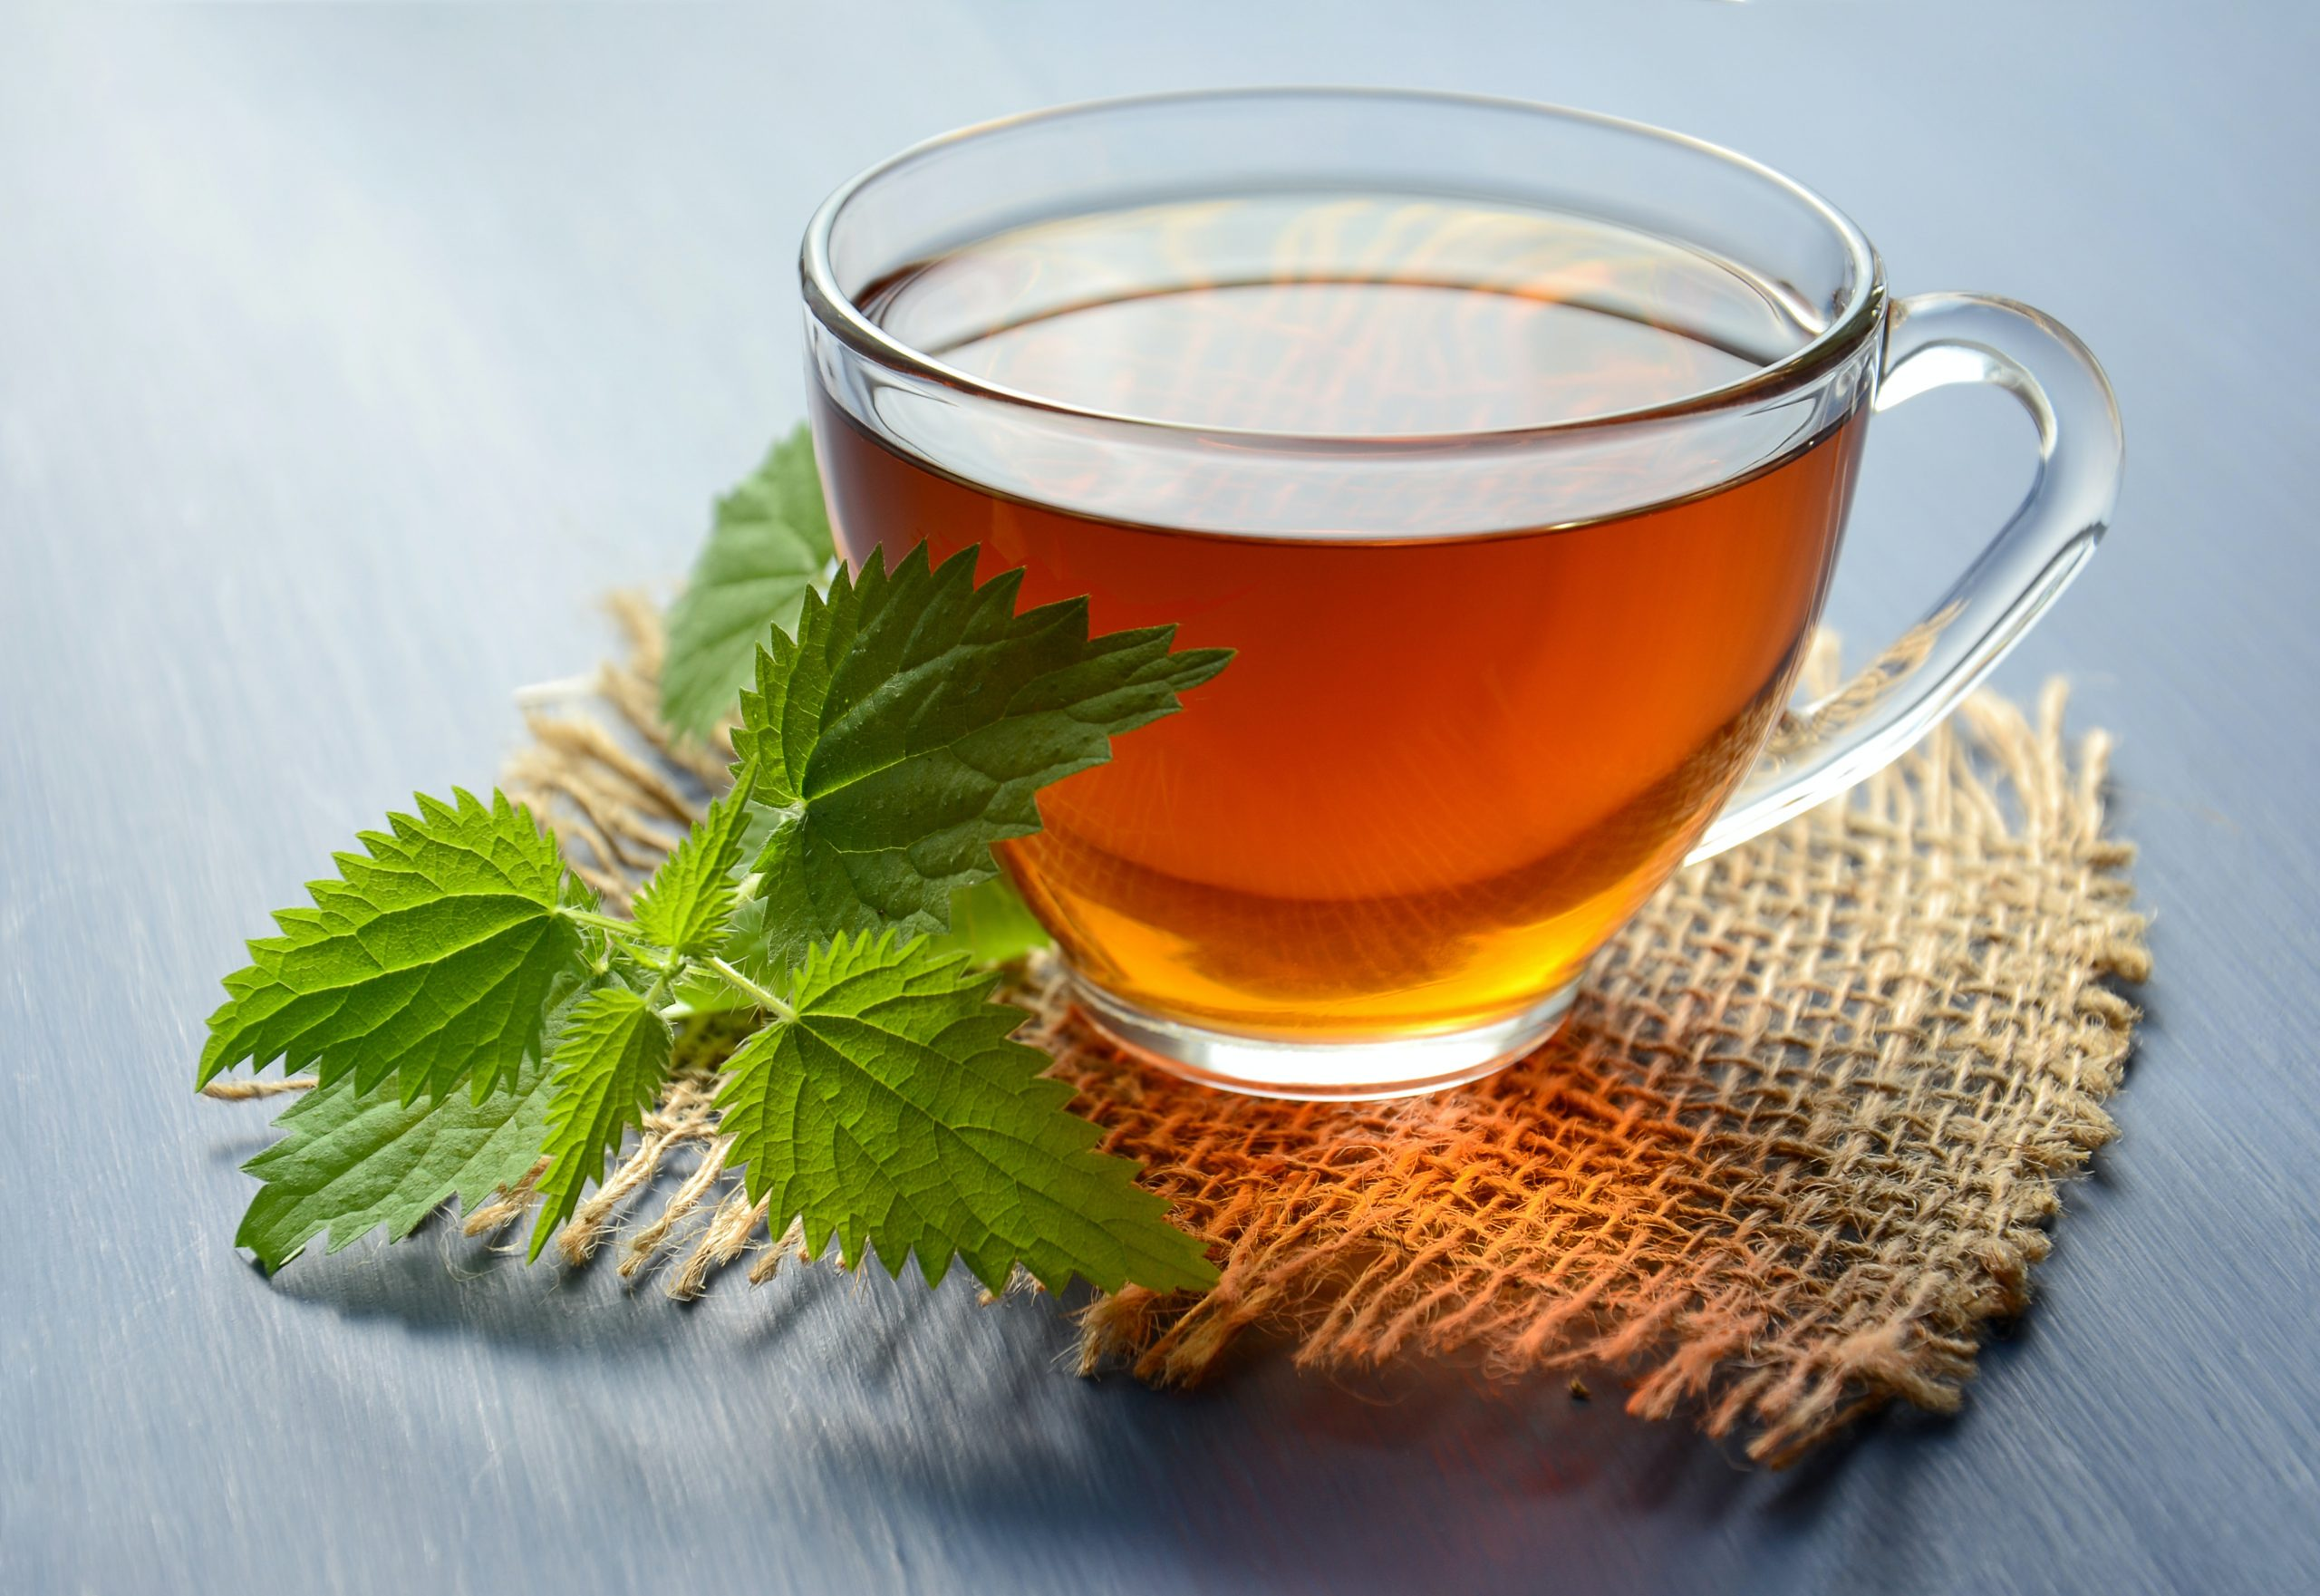 Top 9 Types of Organic Tea and Their Benefits